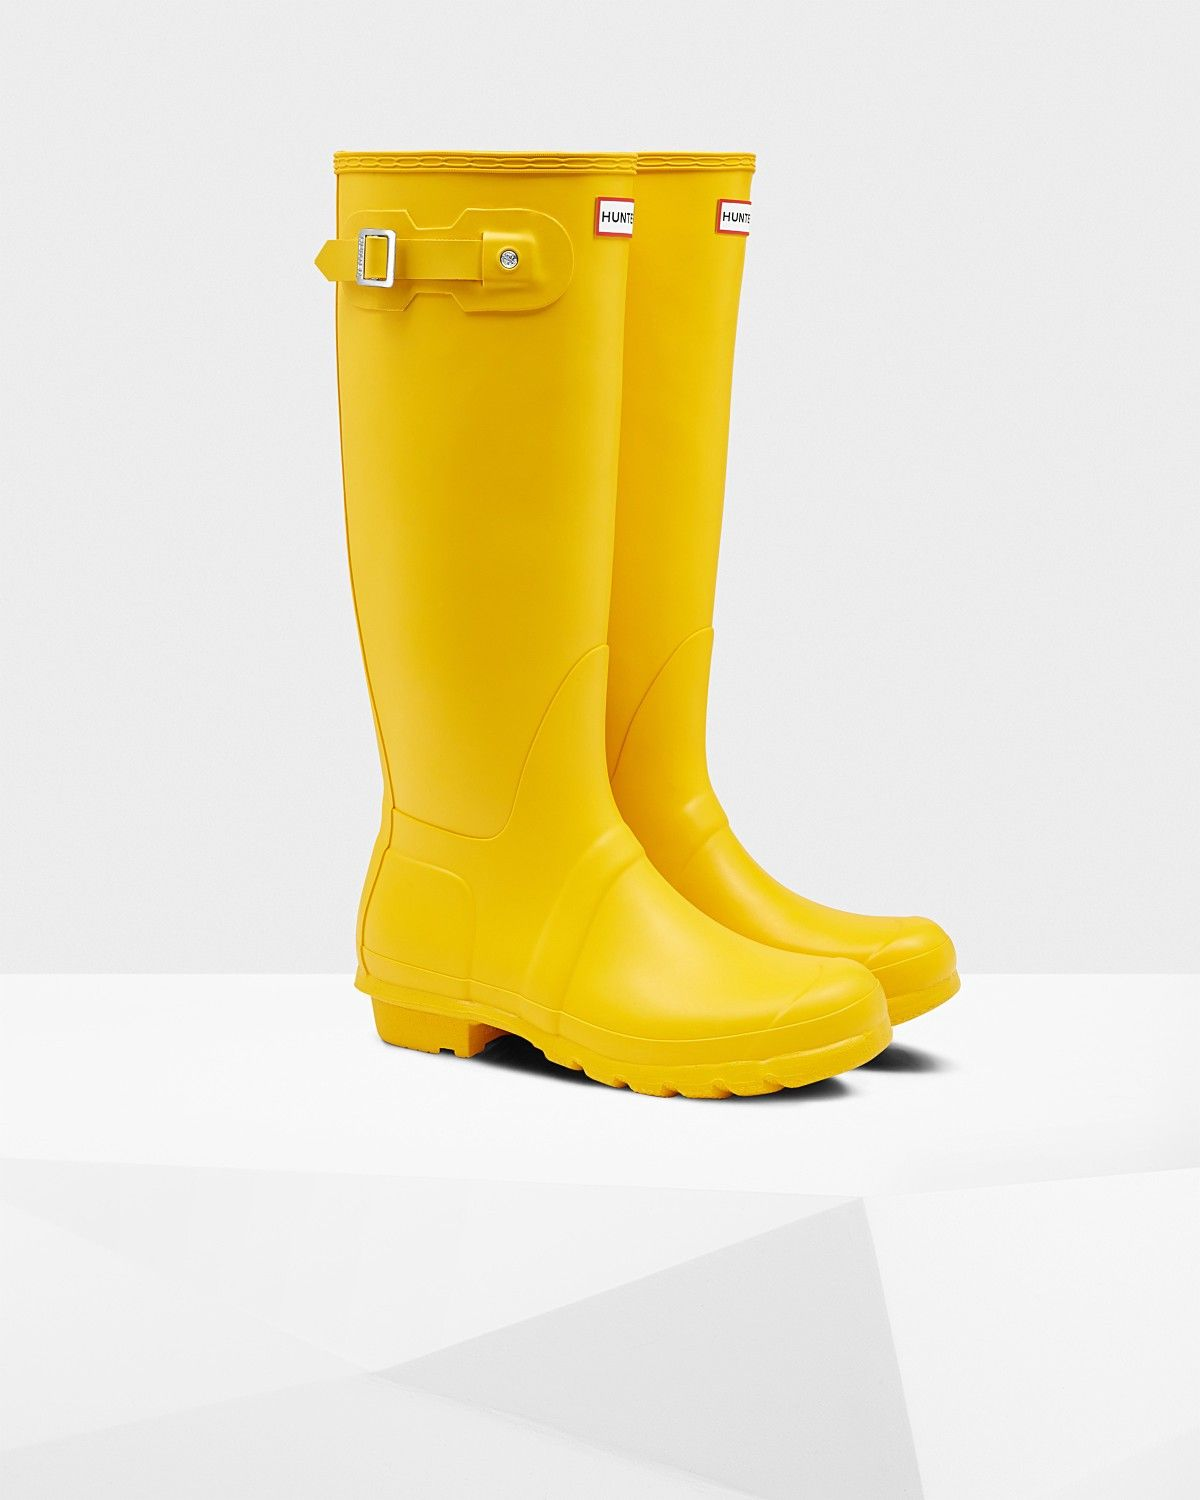 23ee679921b NIB Women39s COACH Signature Rubber Rain Boots Wellies Size 7